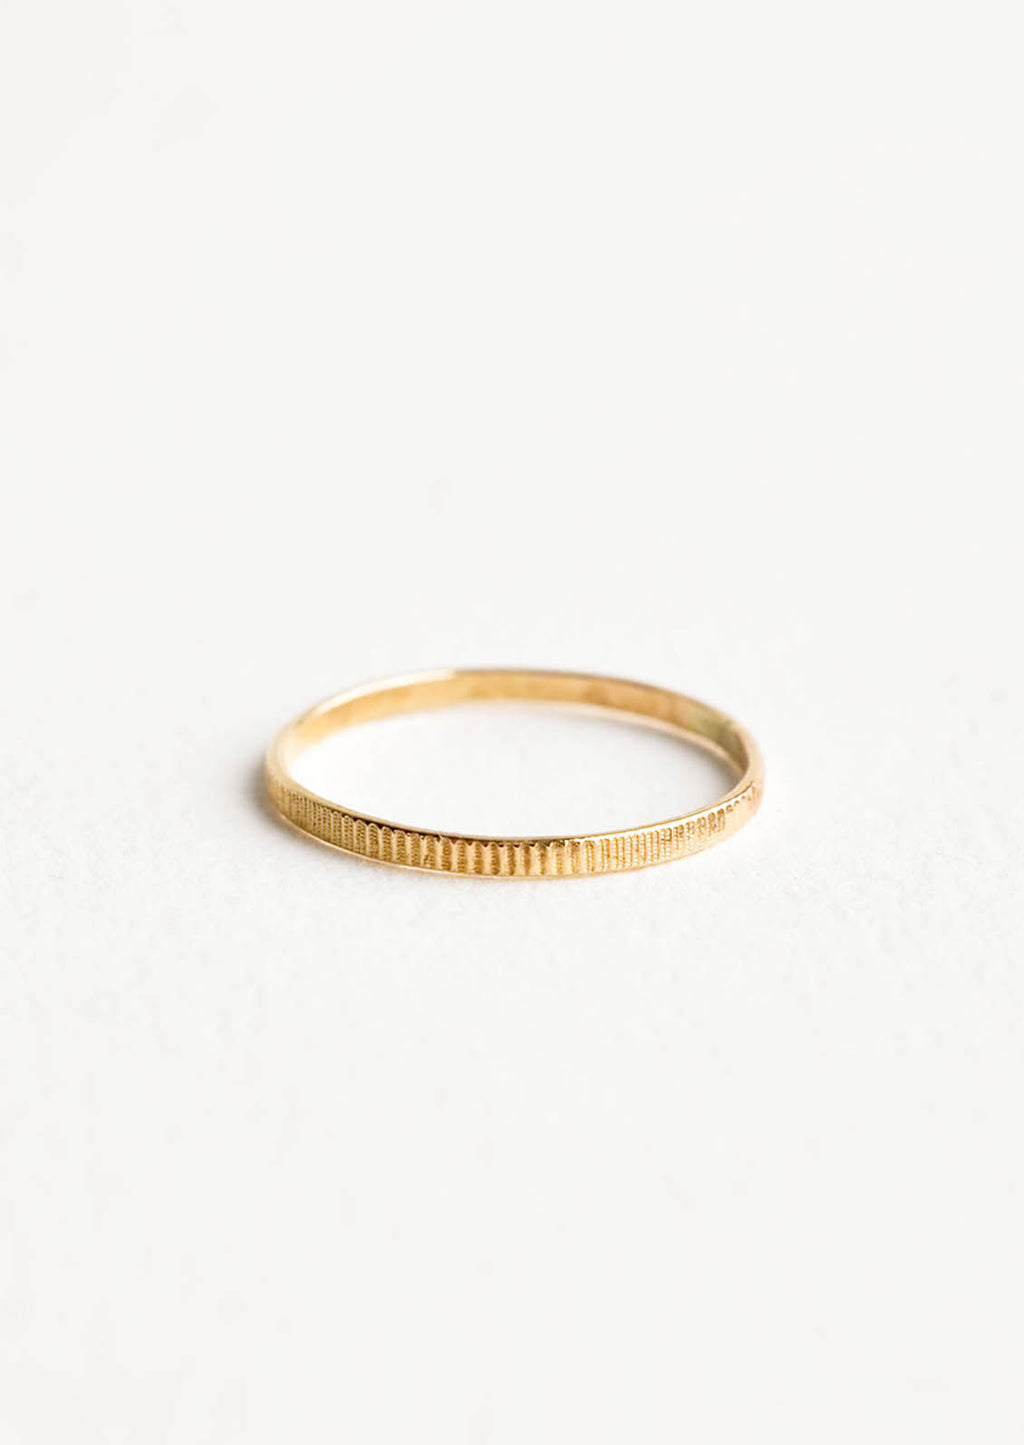 1: Yellow gold ring with etched decorative markings around the band.